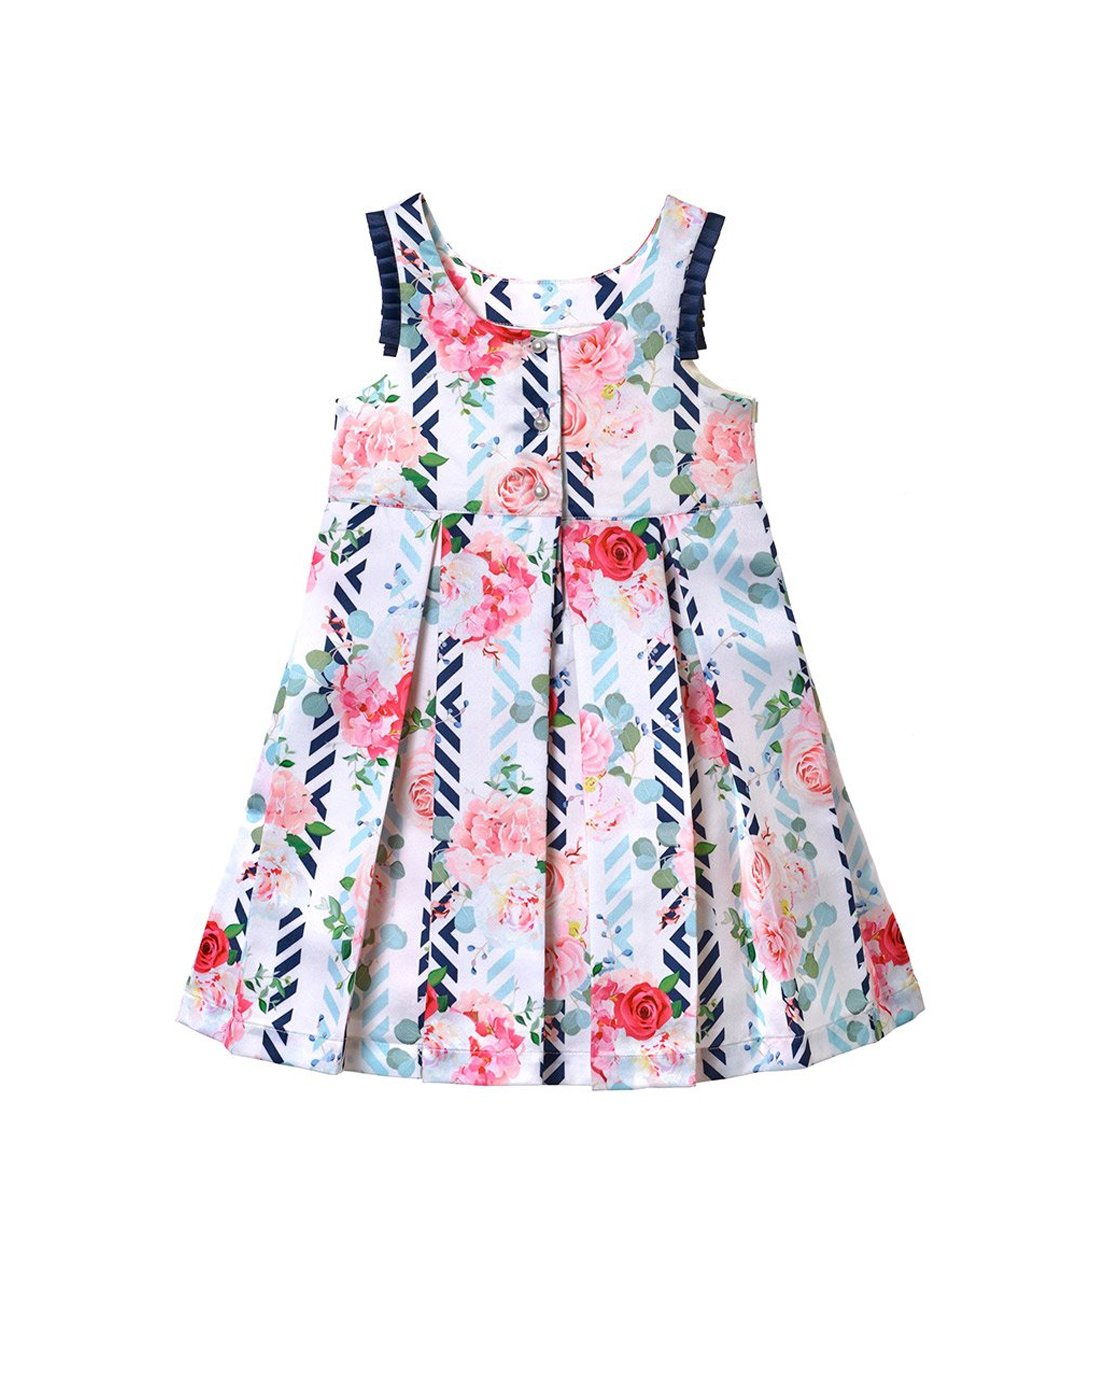 Taffeta Rose and Stripe dress